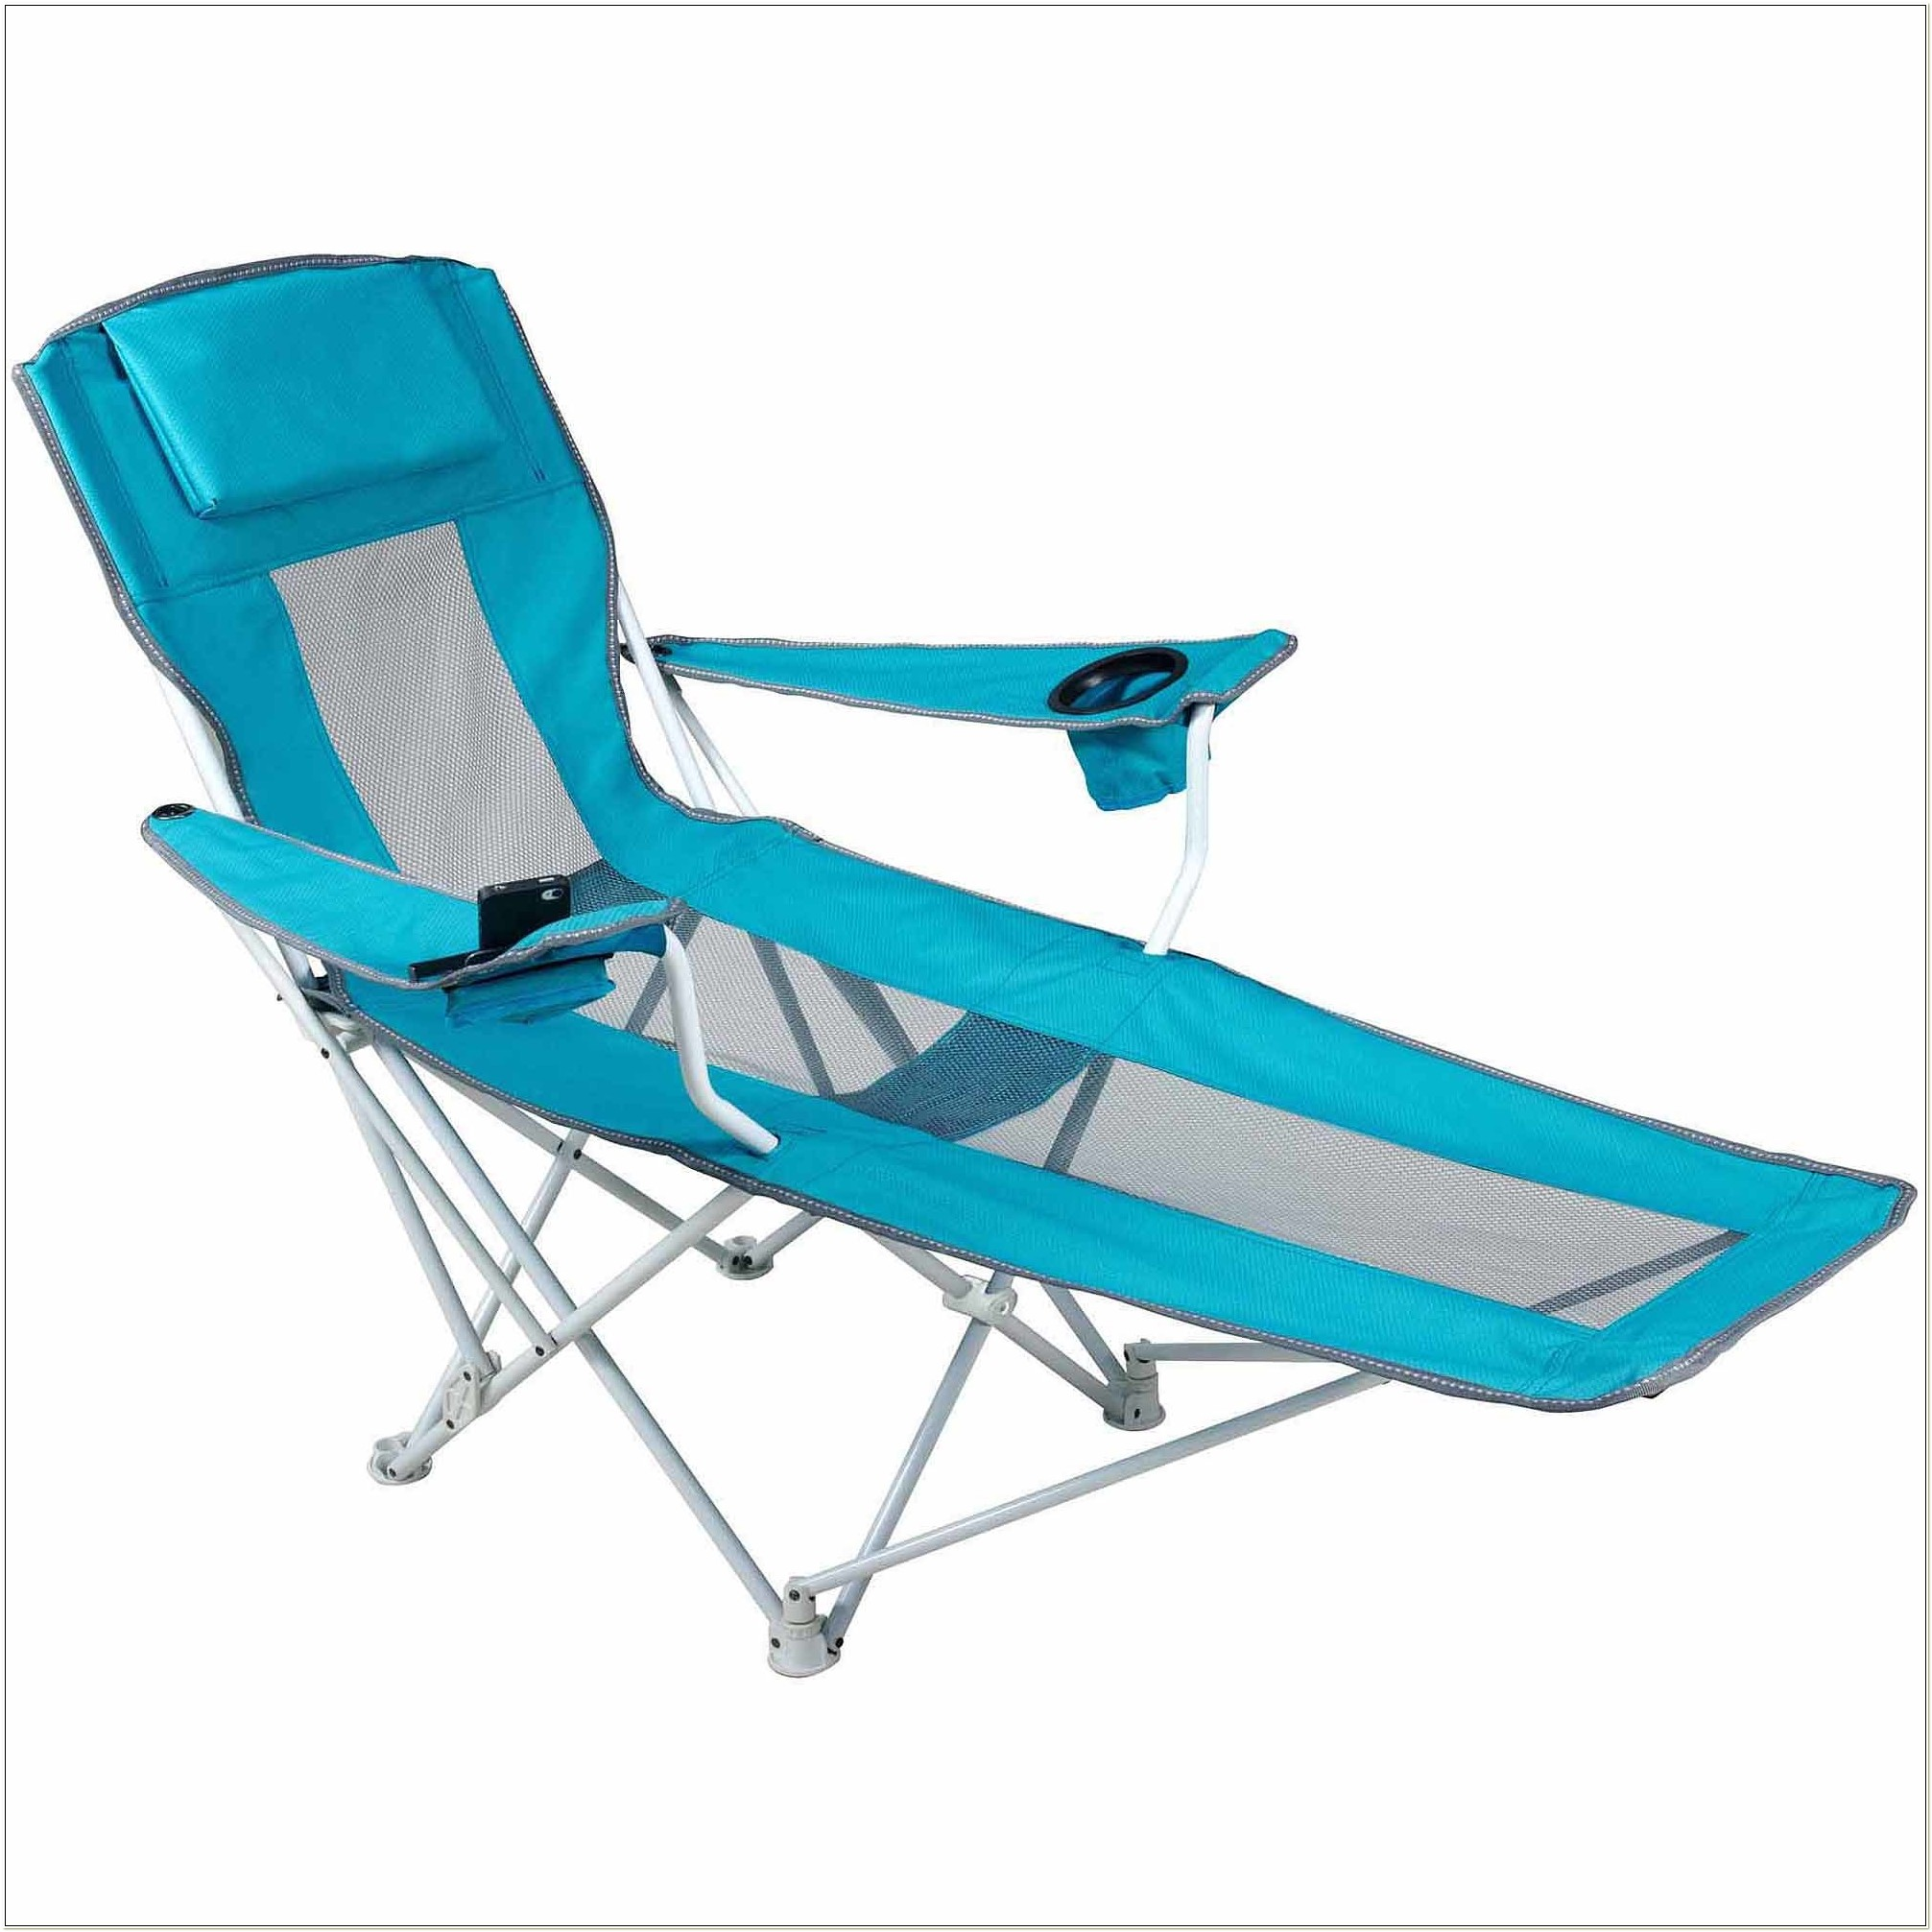 Portable Reclining Lawn Chairs